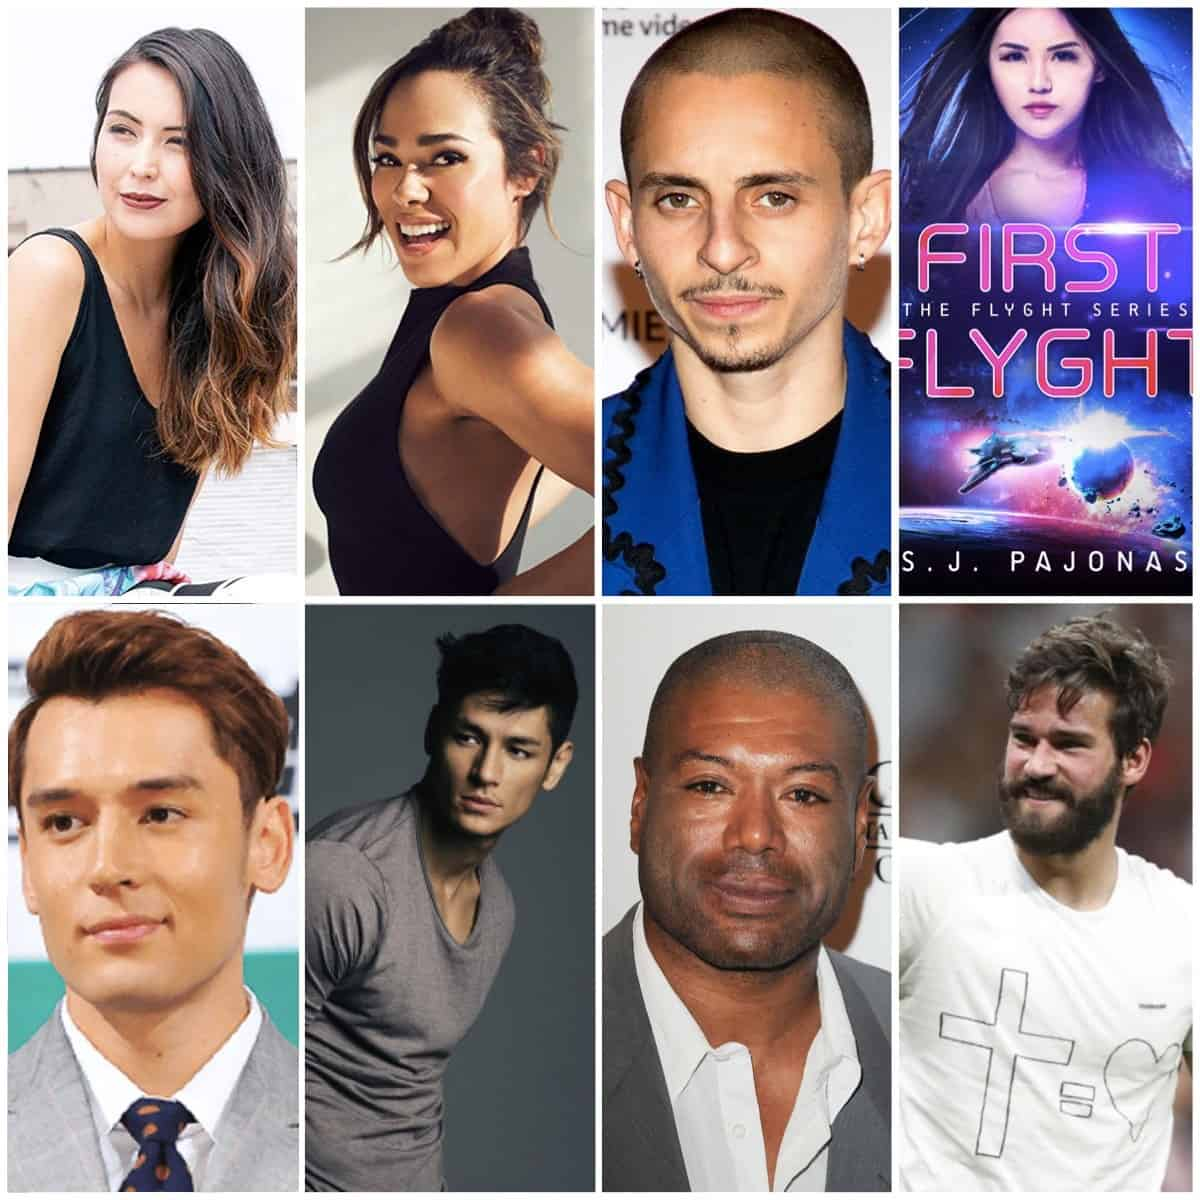 The actors, actresses, and celebrities that inspired me while writing The Flyght Series!